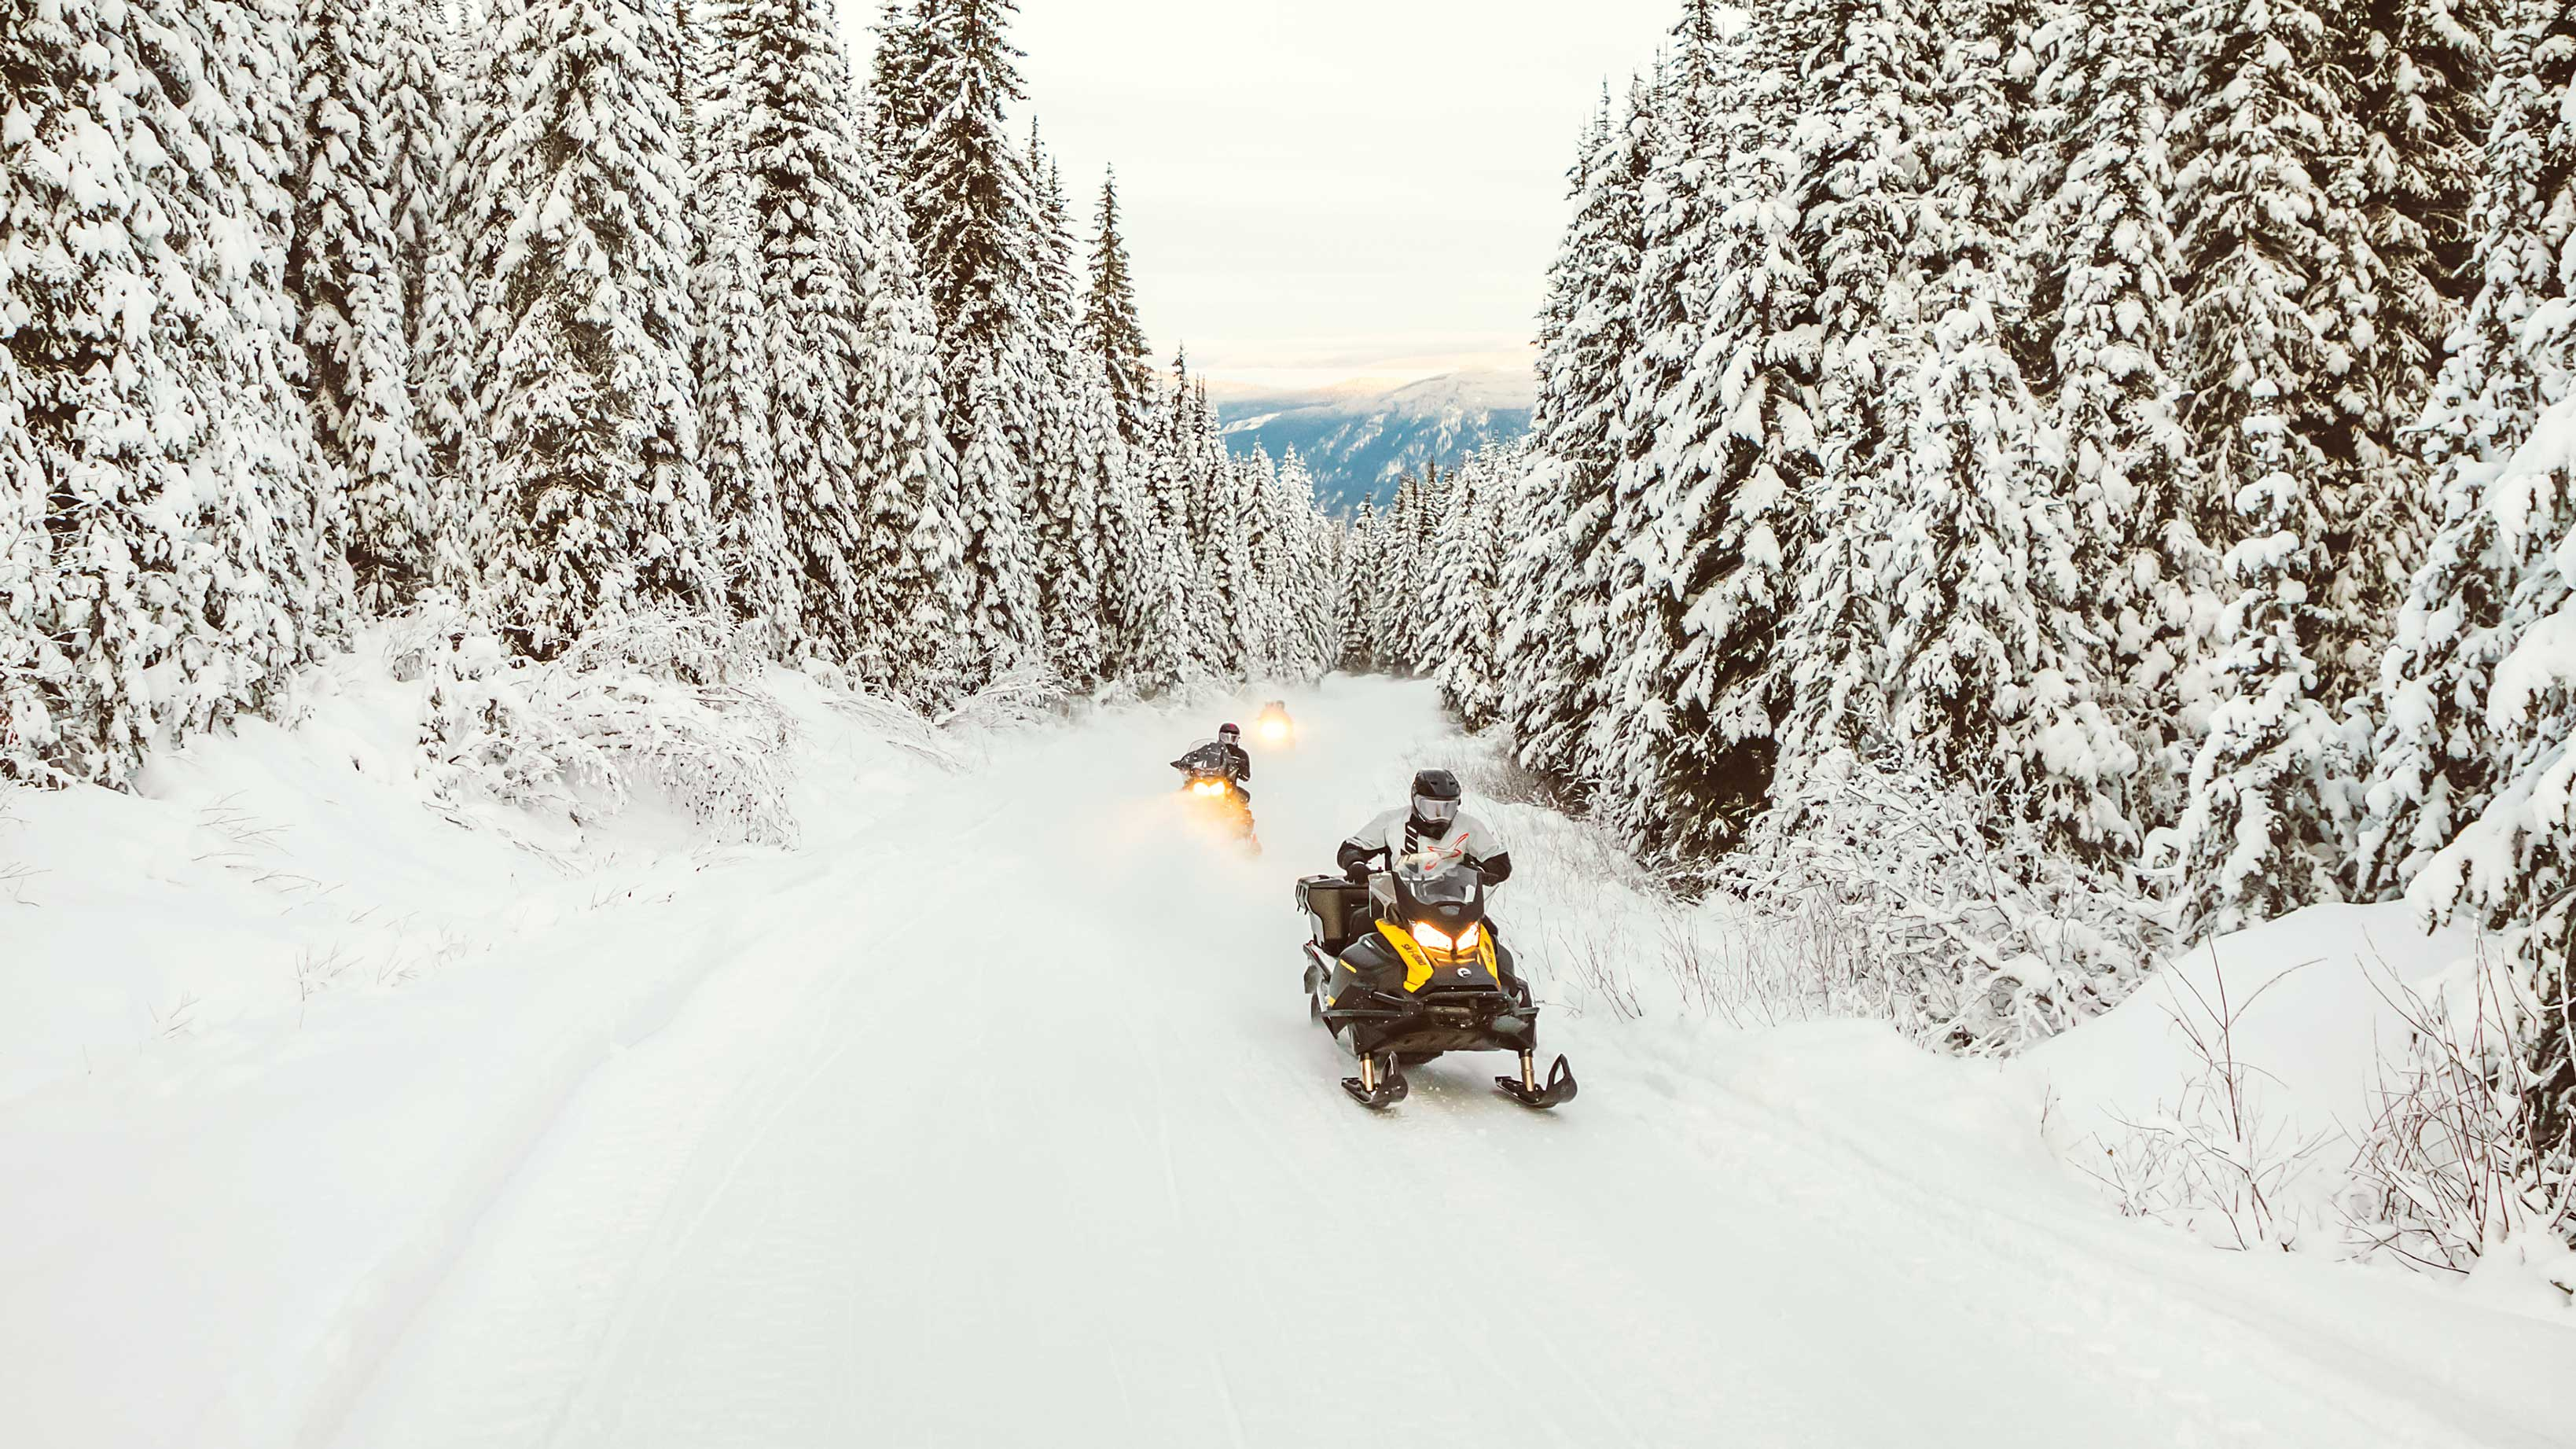 Two Ski-Doo Tundra riding fast on a snow trail